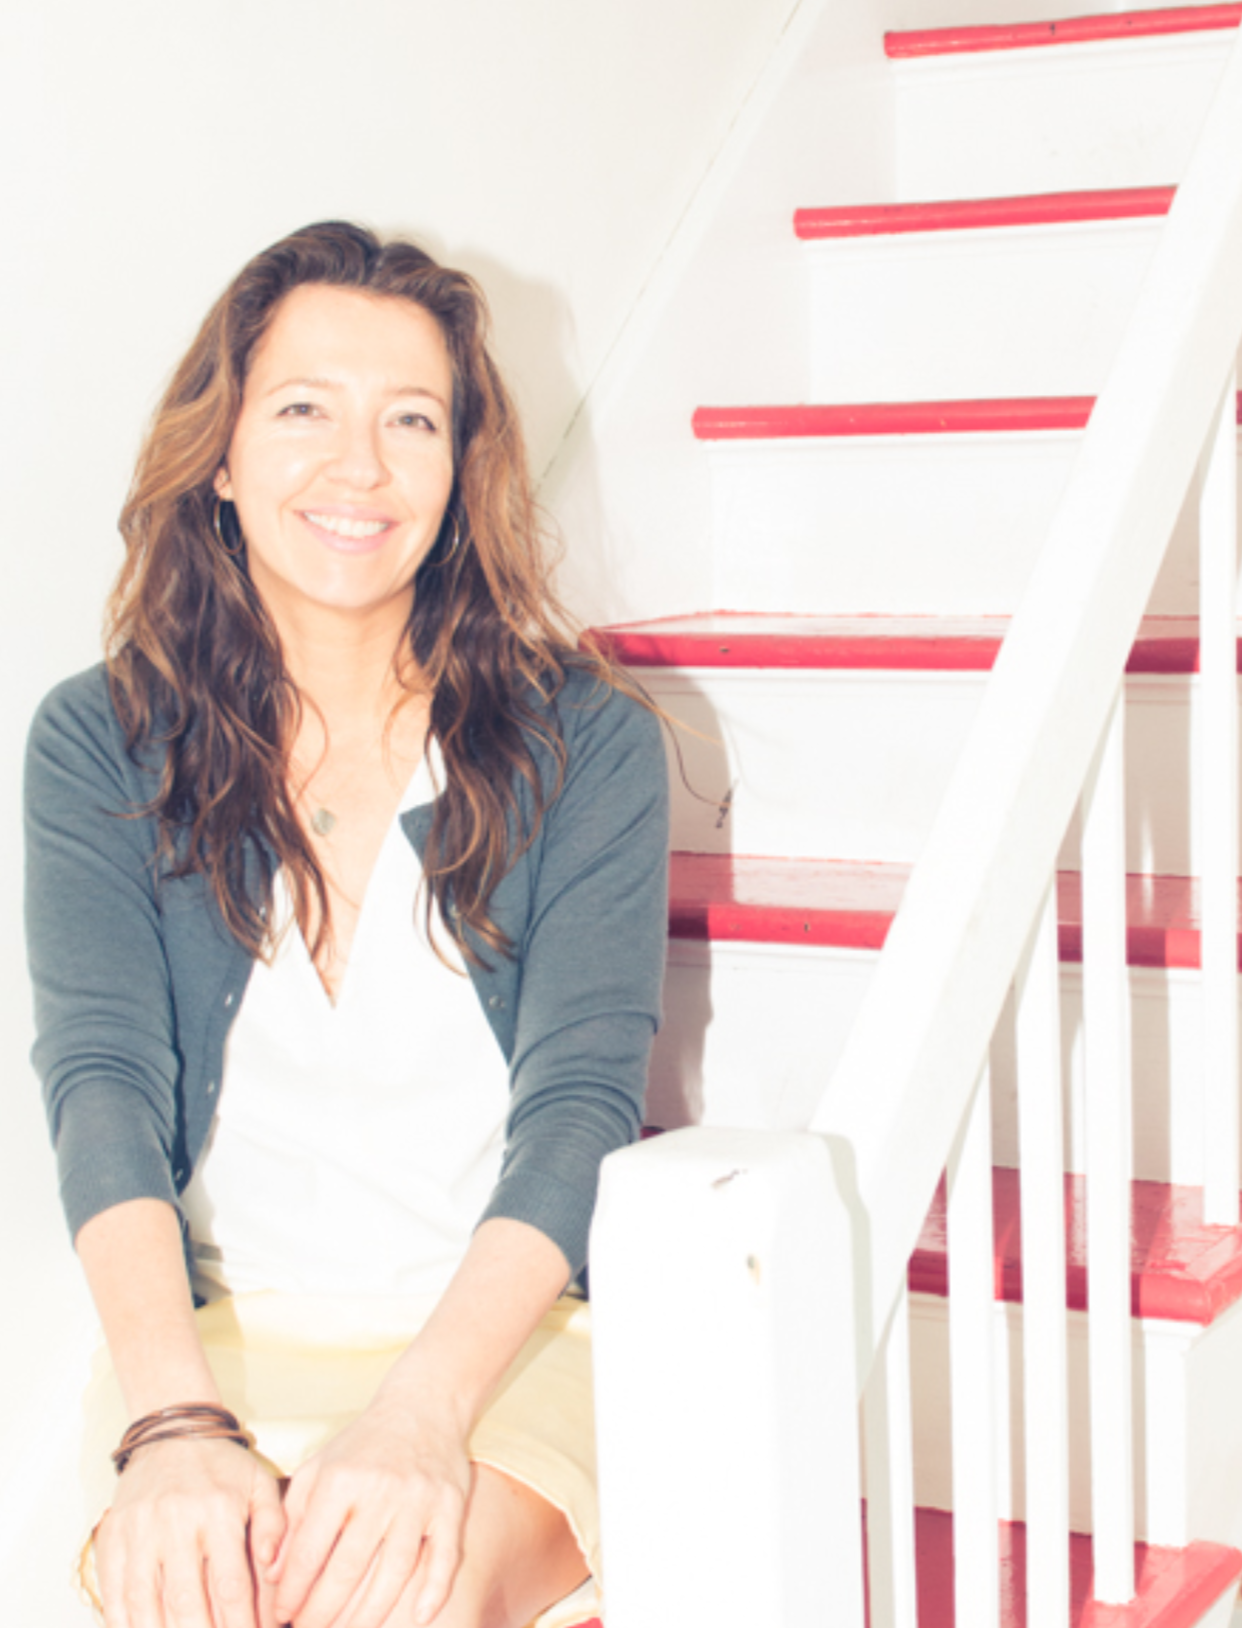 Top 5: Jean Godfrey June, Beauty Director, Goop